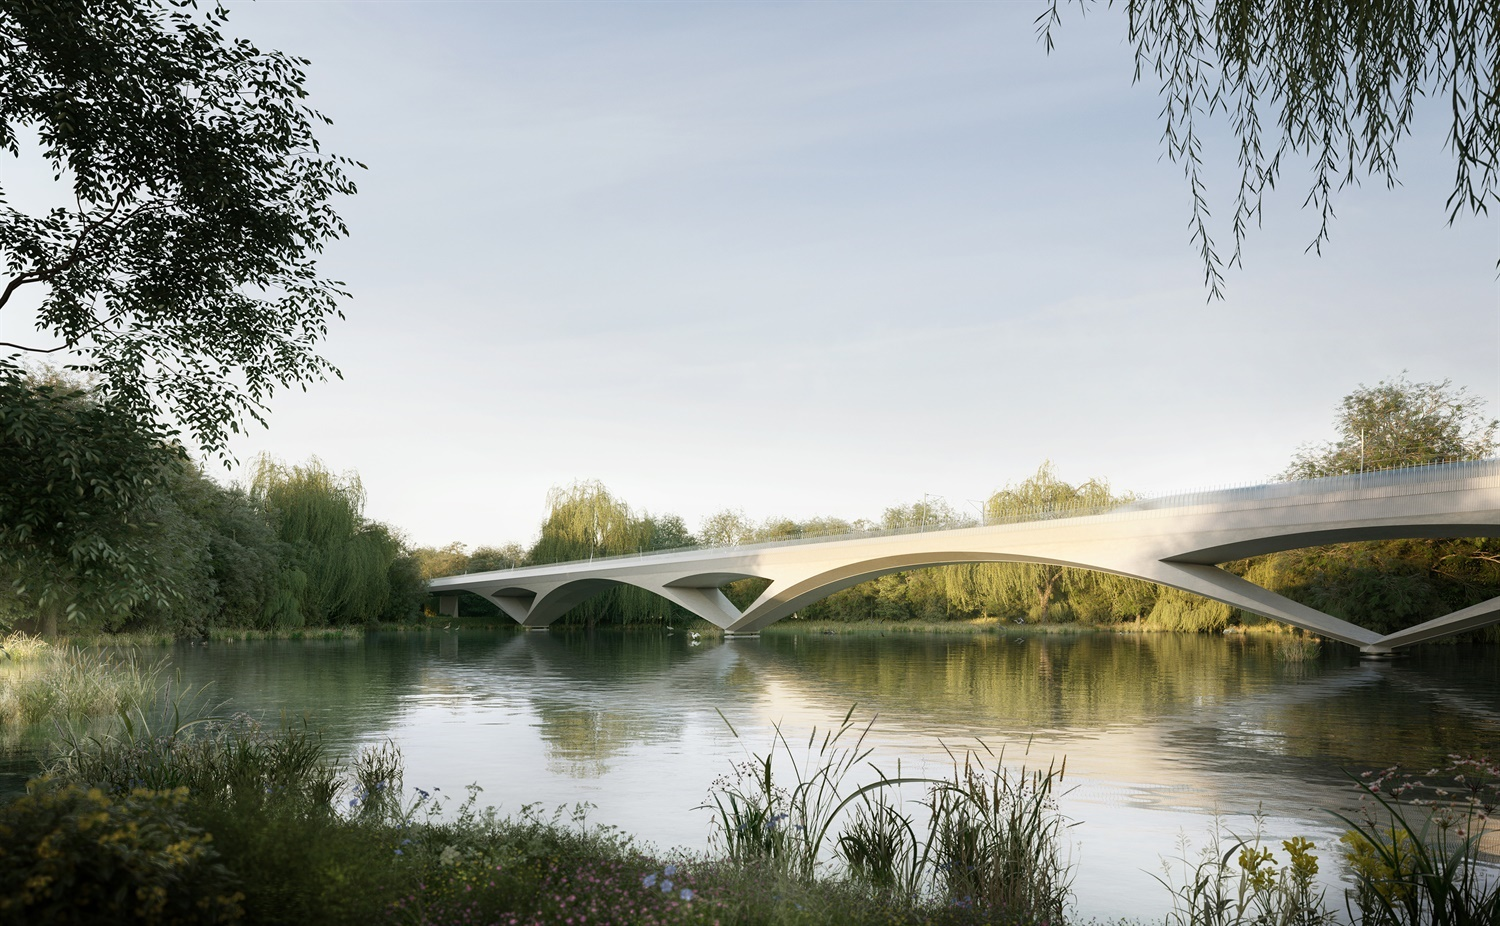 Ex-Carillion boss to take over £2.5bn Balfour Beatty Vinci HS2 contracts